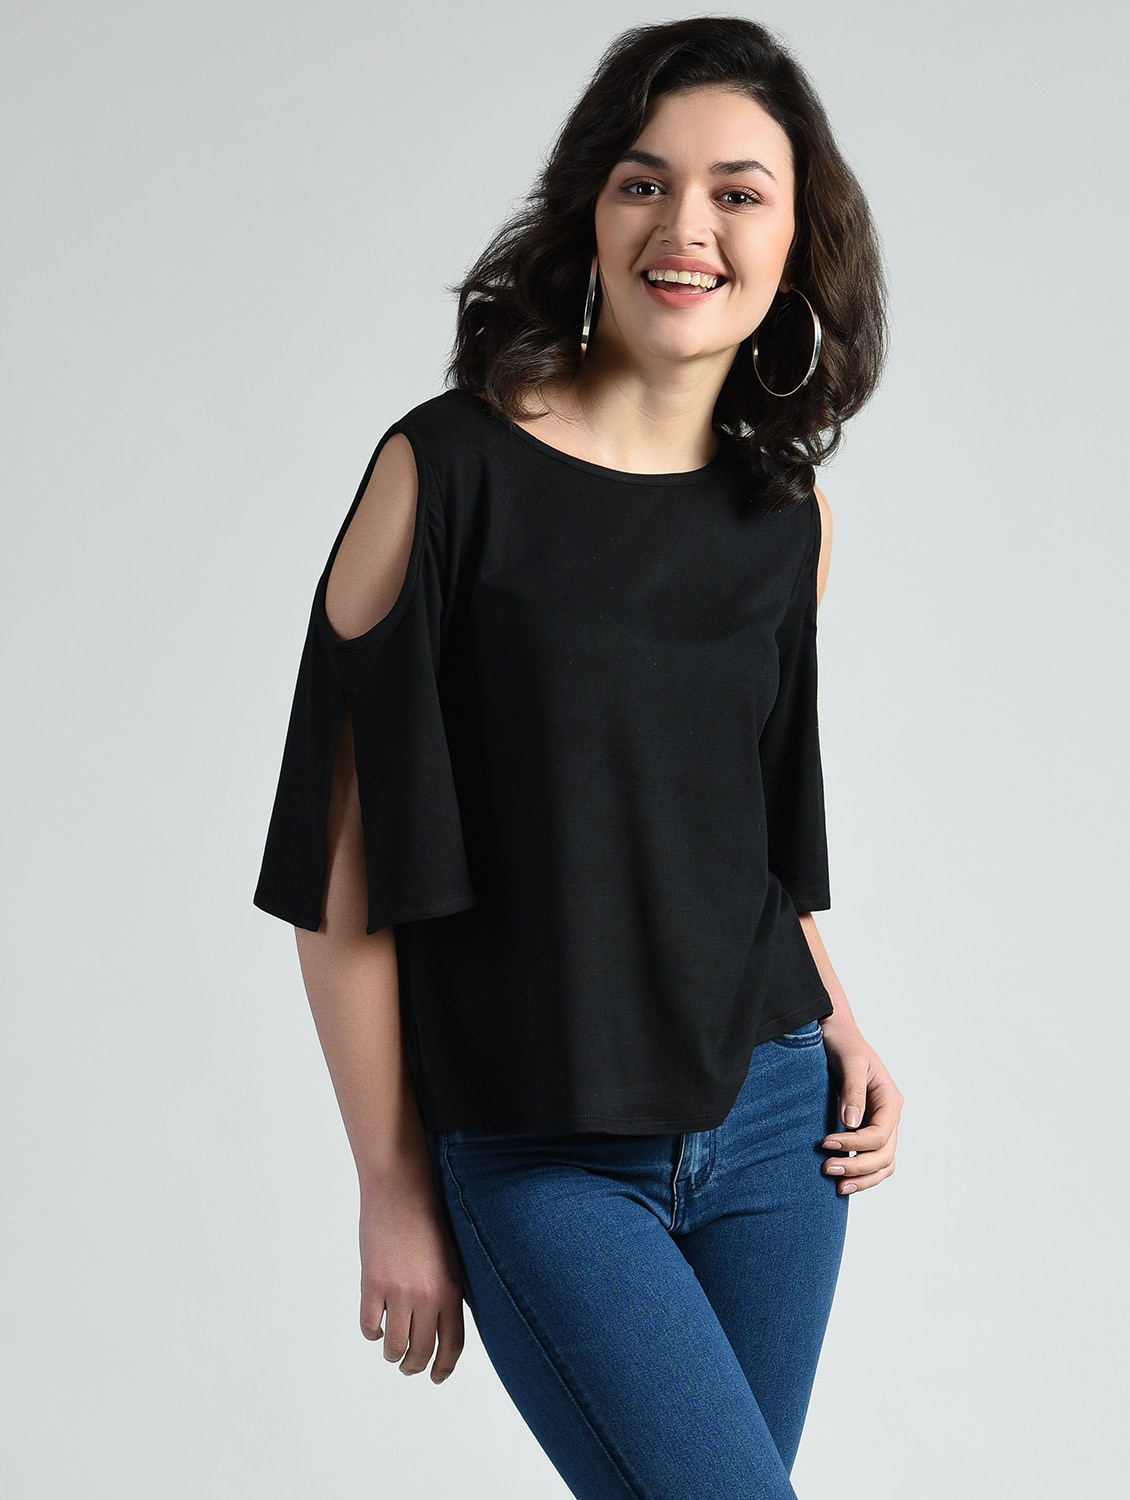 f467288527f45d Buy Slit Sleeve Cold Shoulder Top for Women from Aara for ₹537 at 46% off